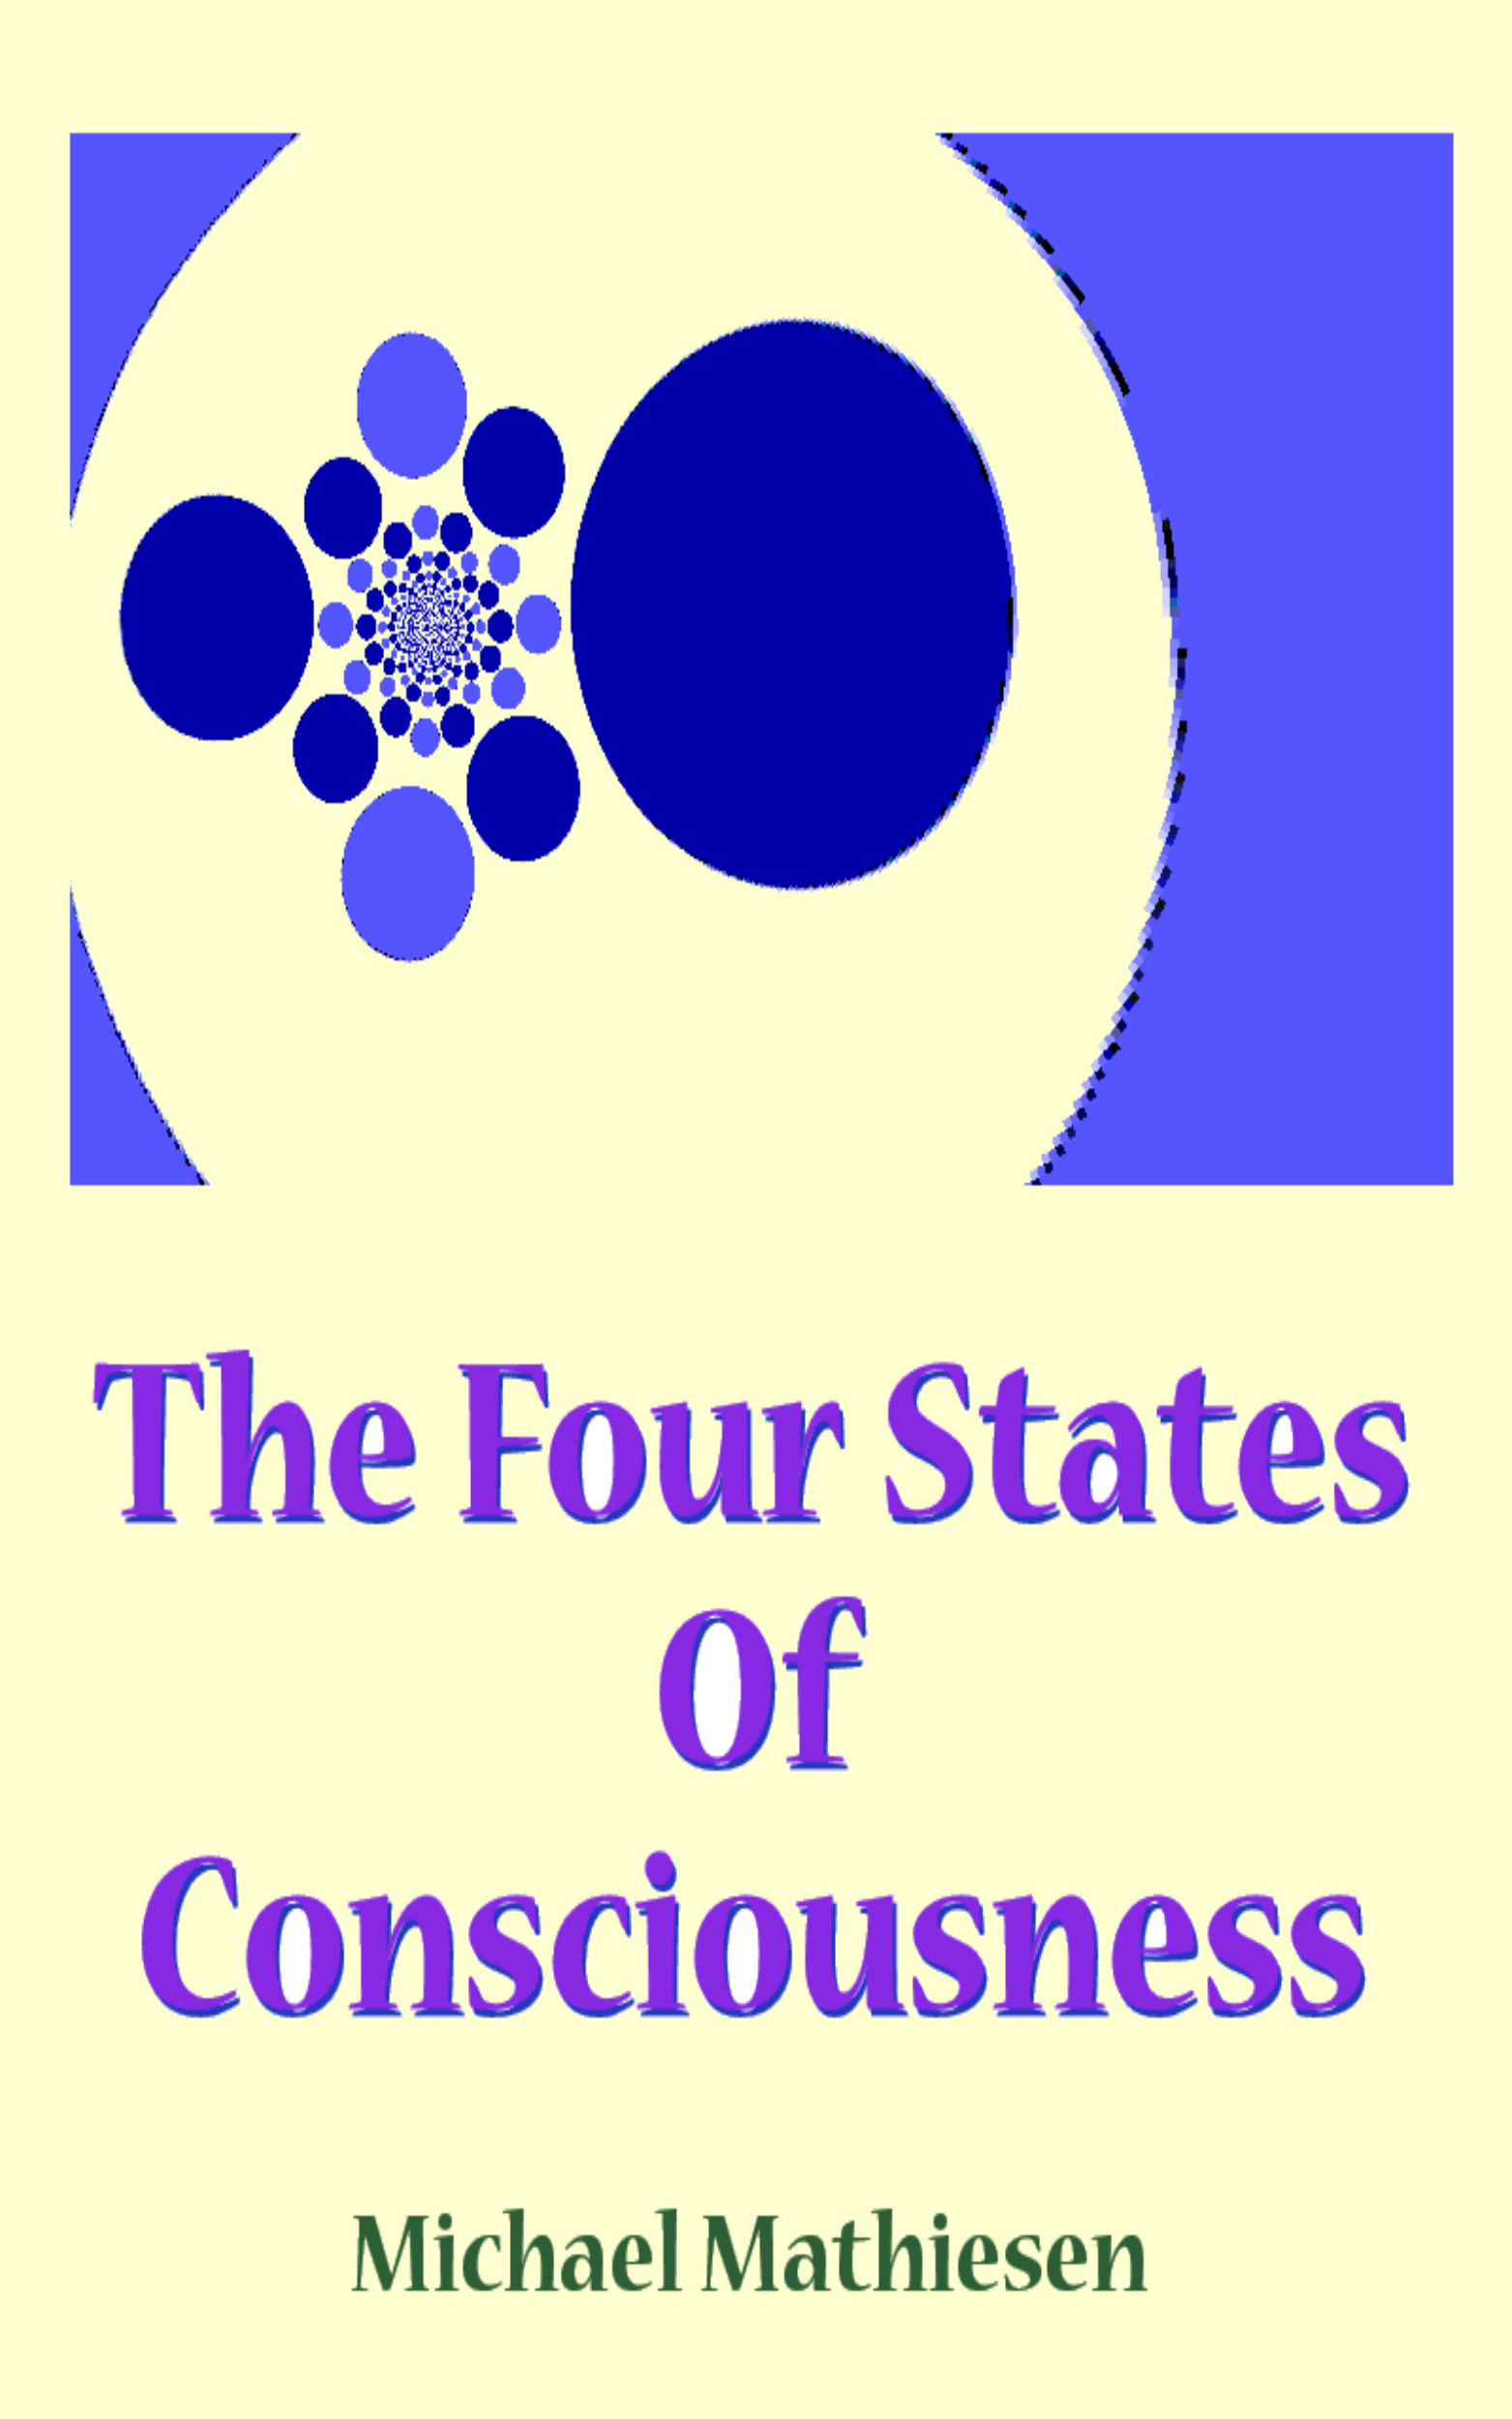 The Four States Of Consciousness, an Ebook by Michael Mathiesen